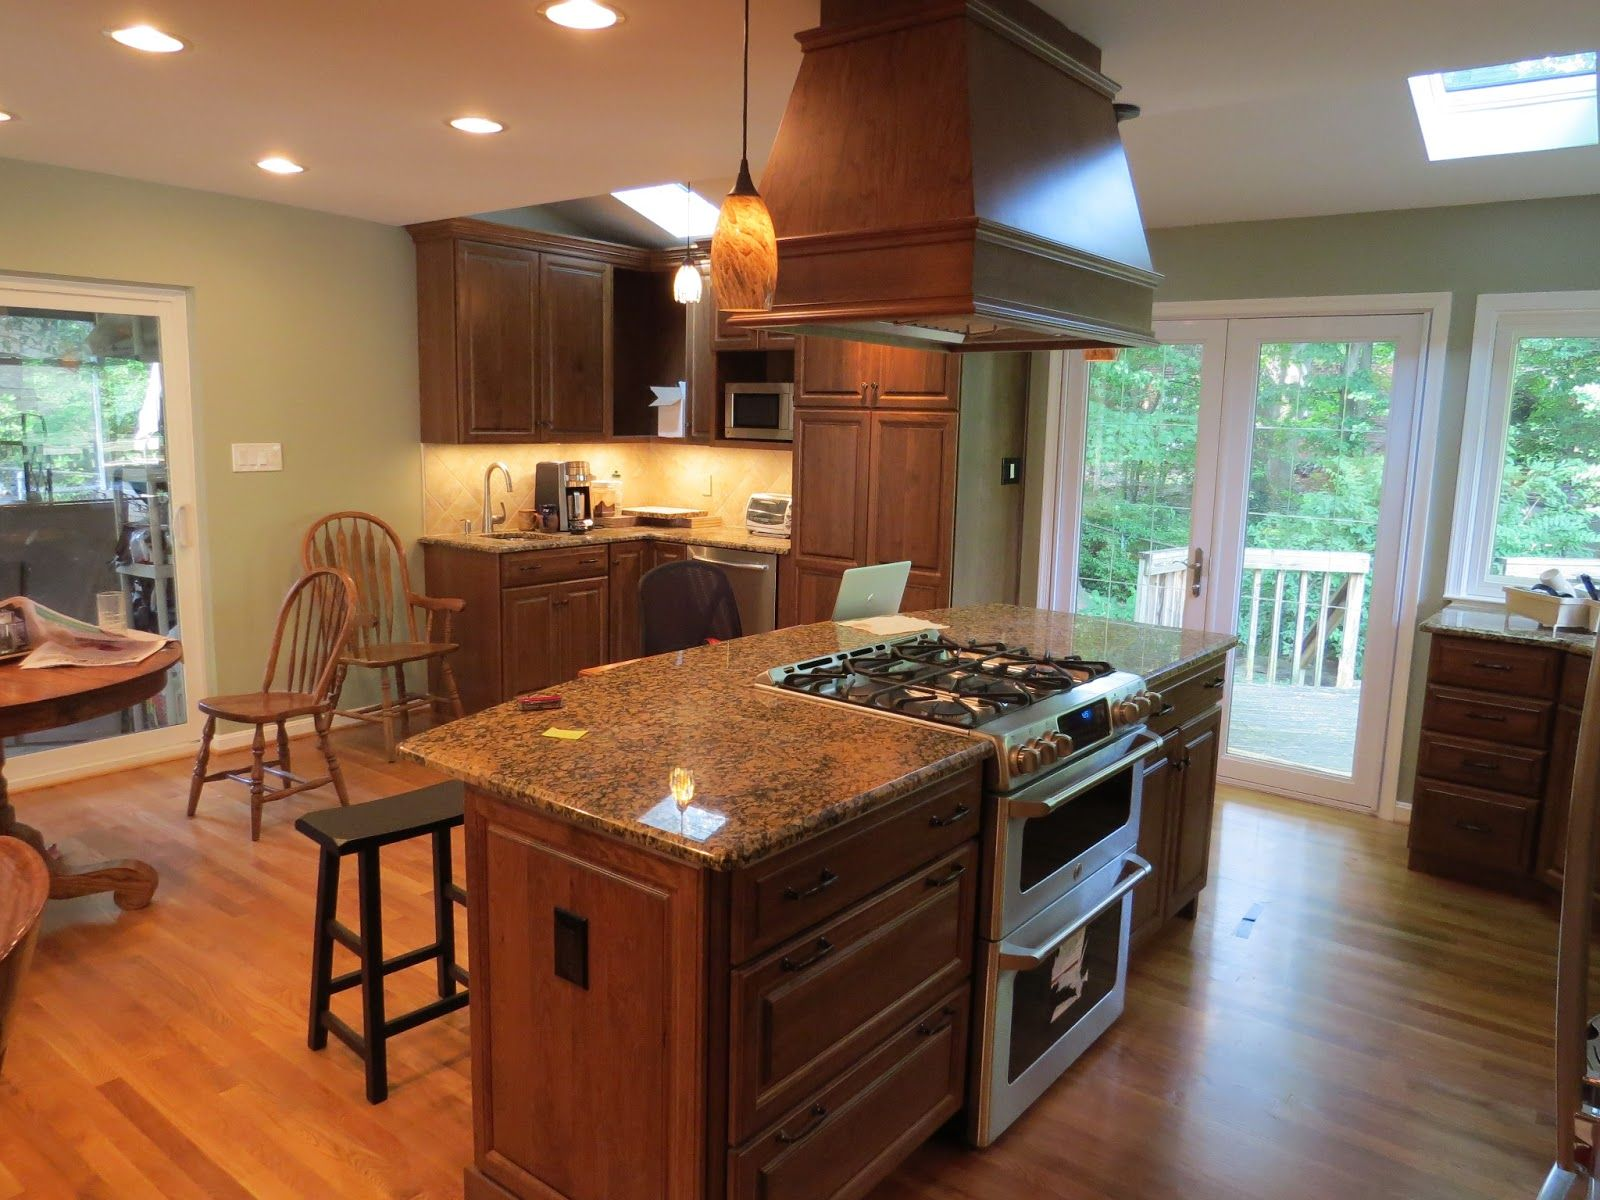 kitchen island with stove south jersey remodeling wooden modern top on glossy brown marble